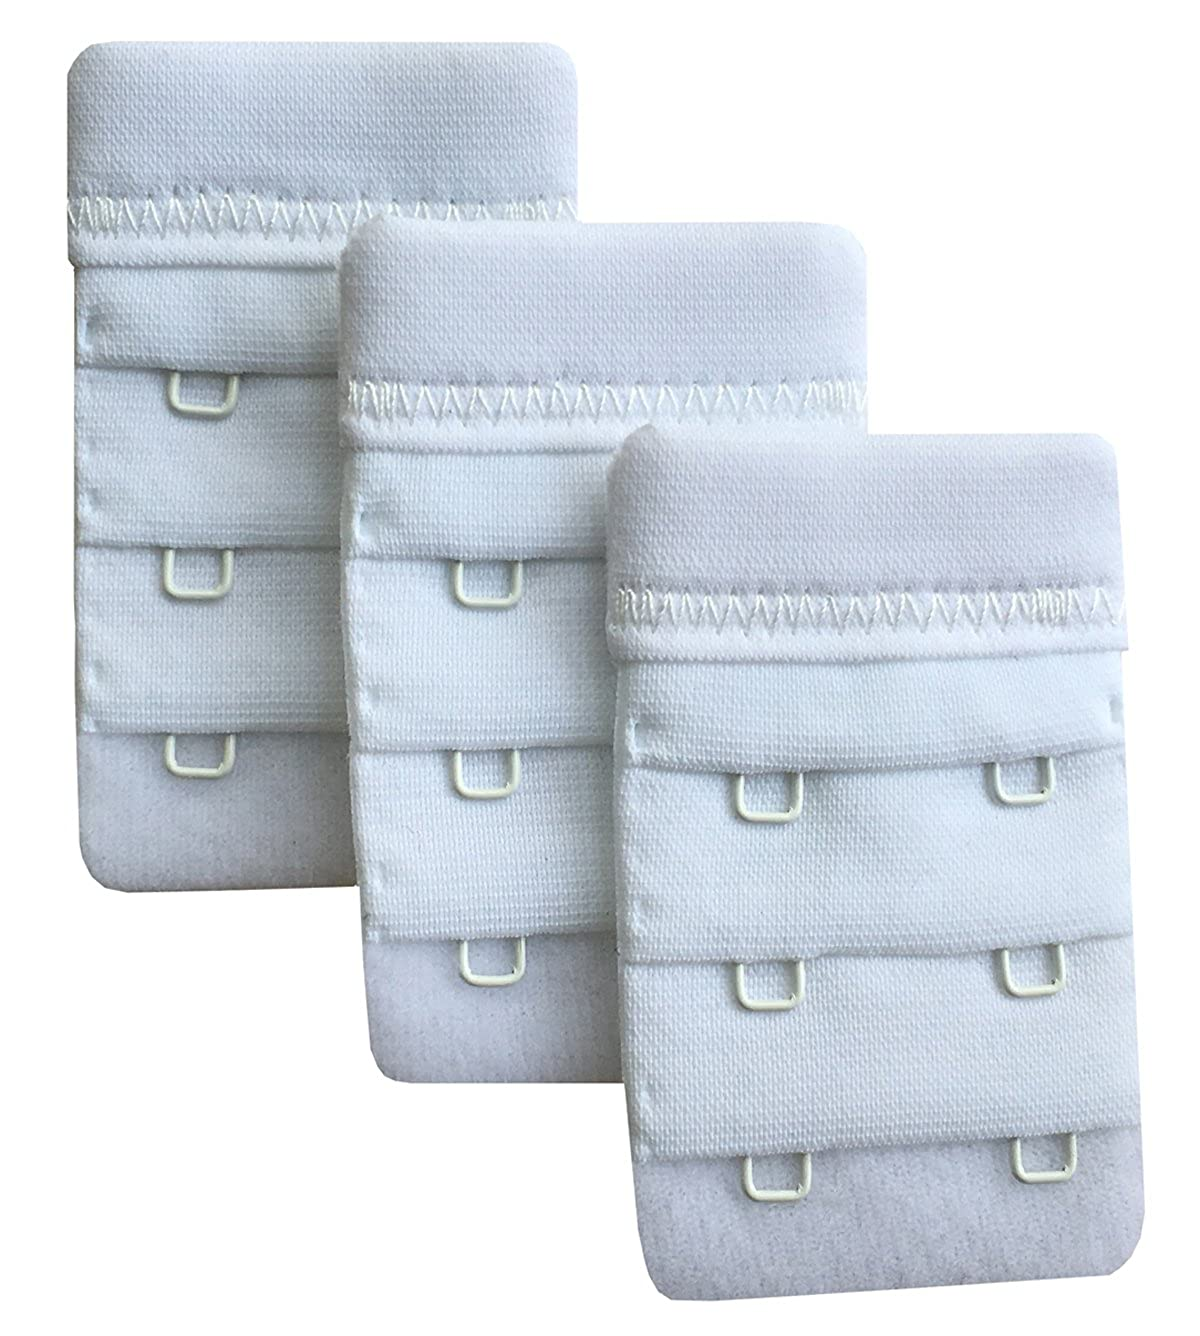 Chanie Women Pack of 3 Soft Comfortable 2 Hooks Bra Extender,6.1cm x 3.8cm